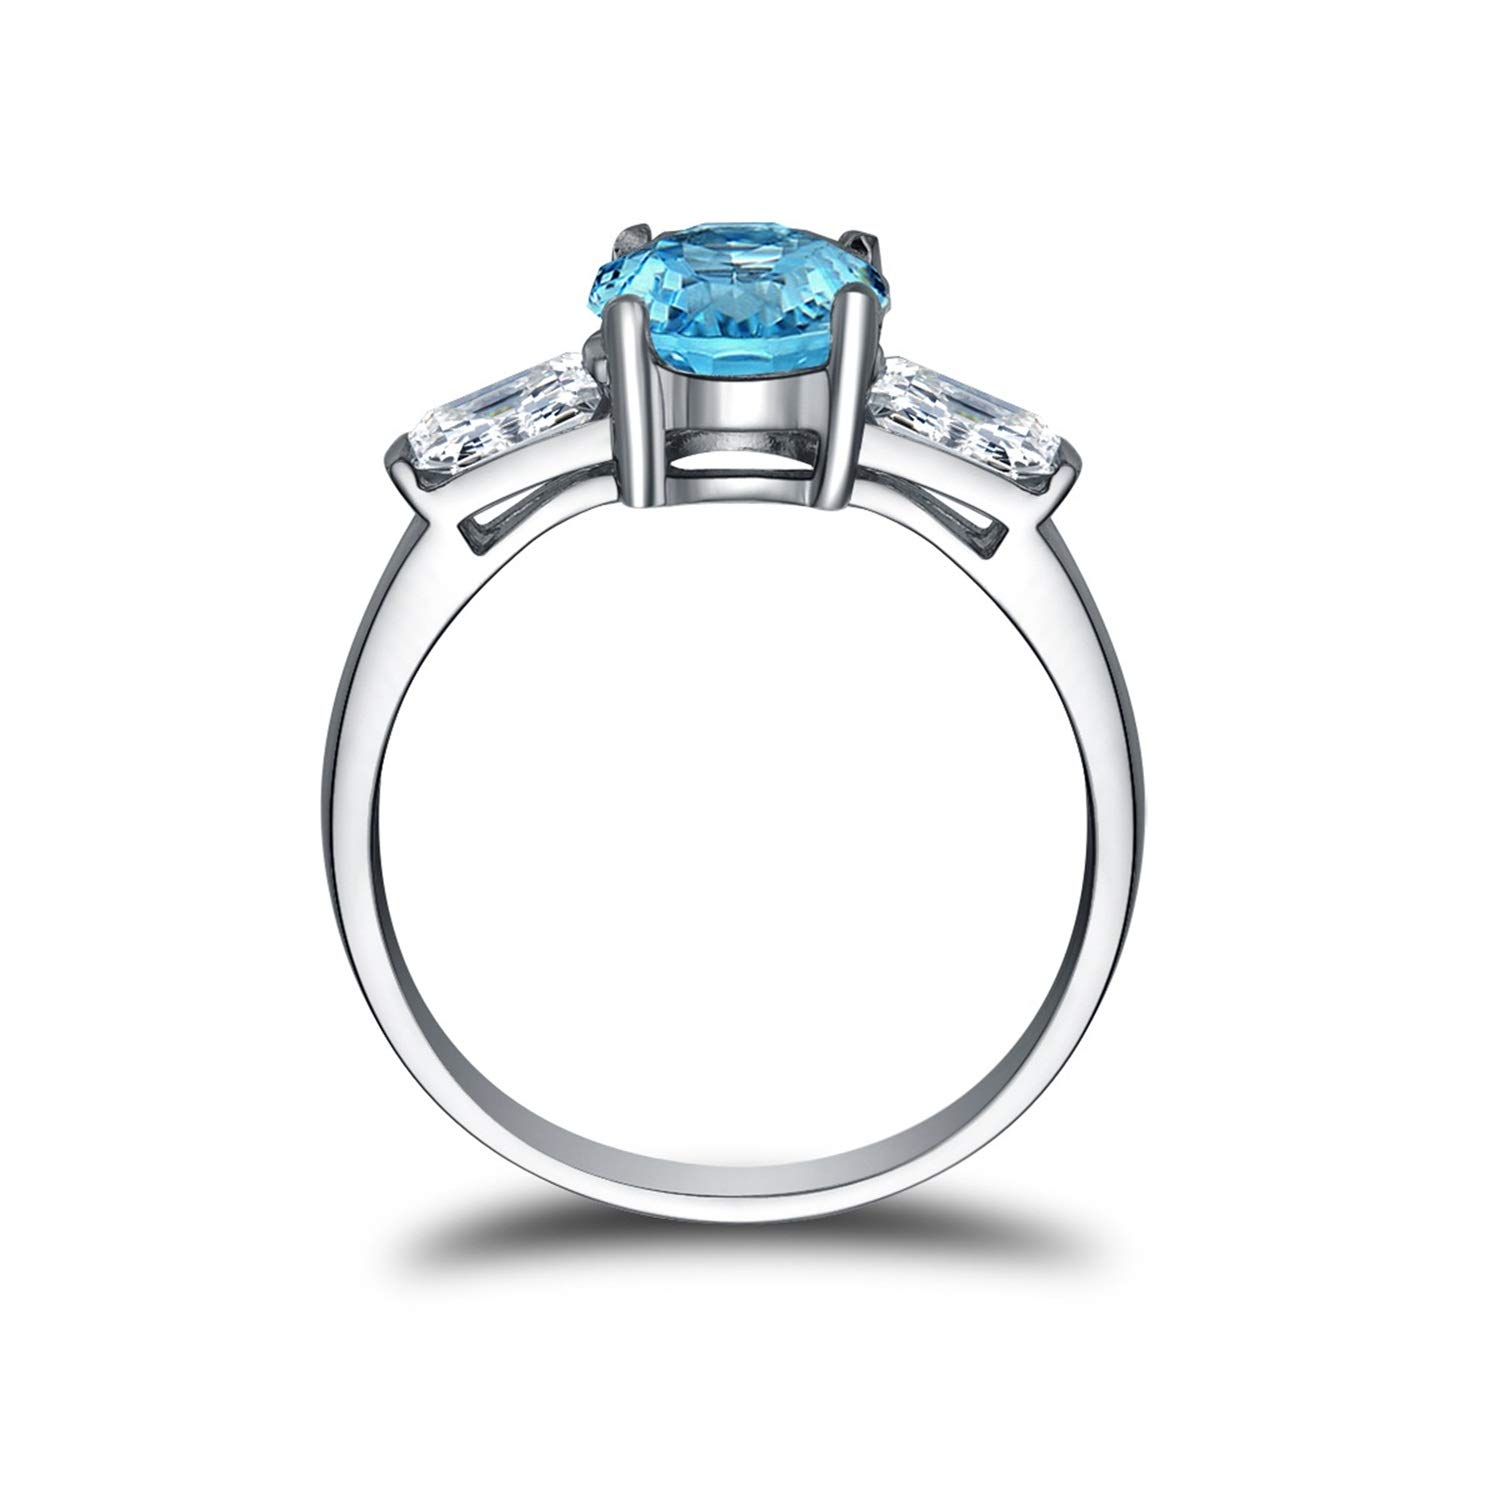 AMDXD Jewelry 925 Sterling Silver Ring Women Blue Round Shape Topaz Round Rings